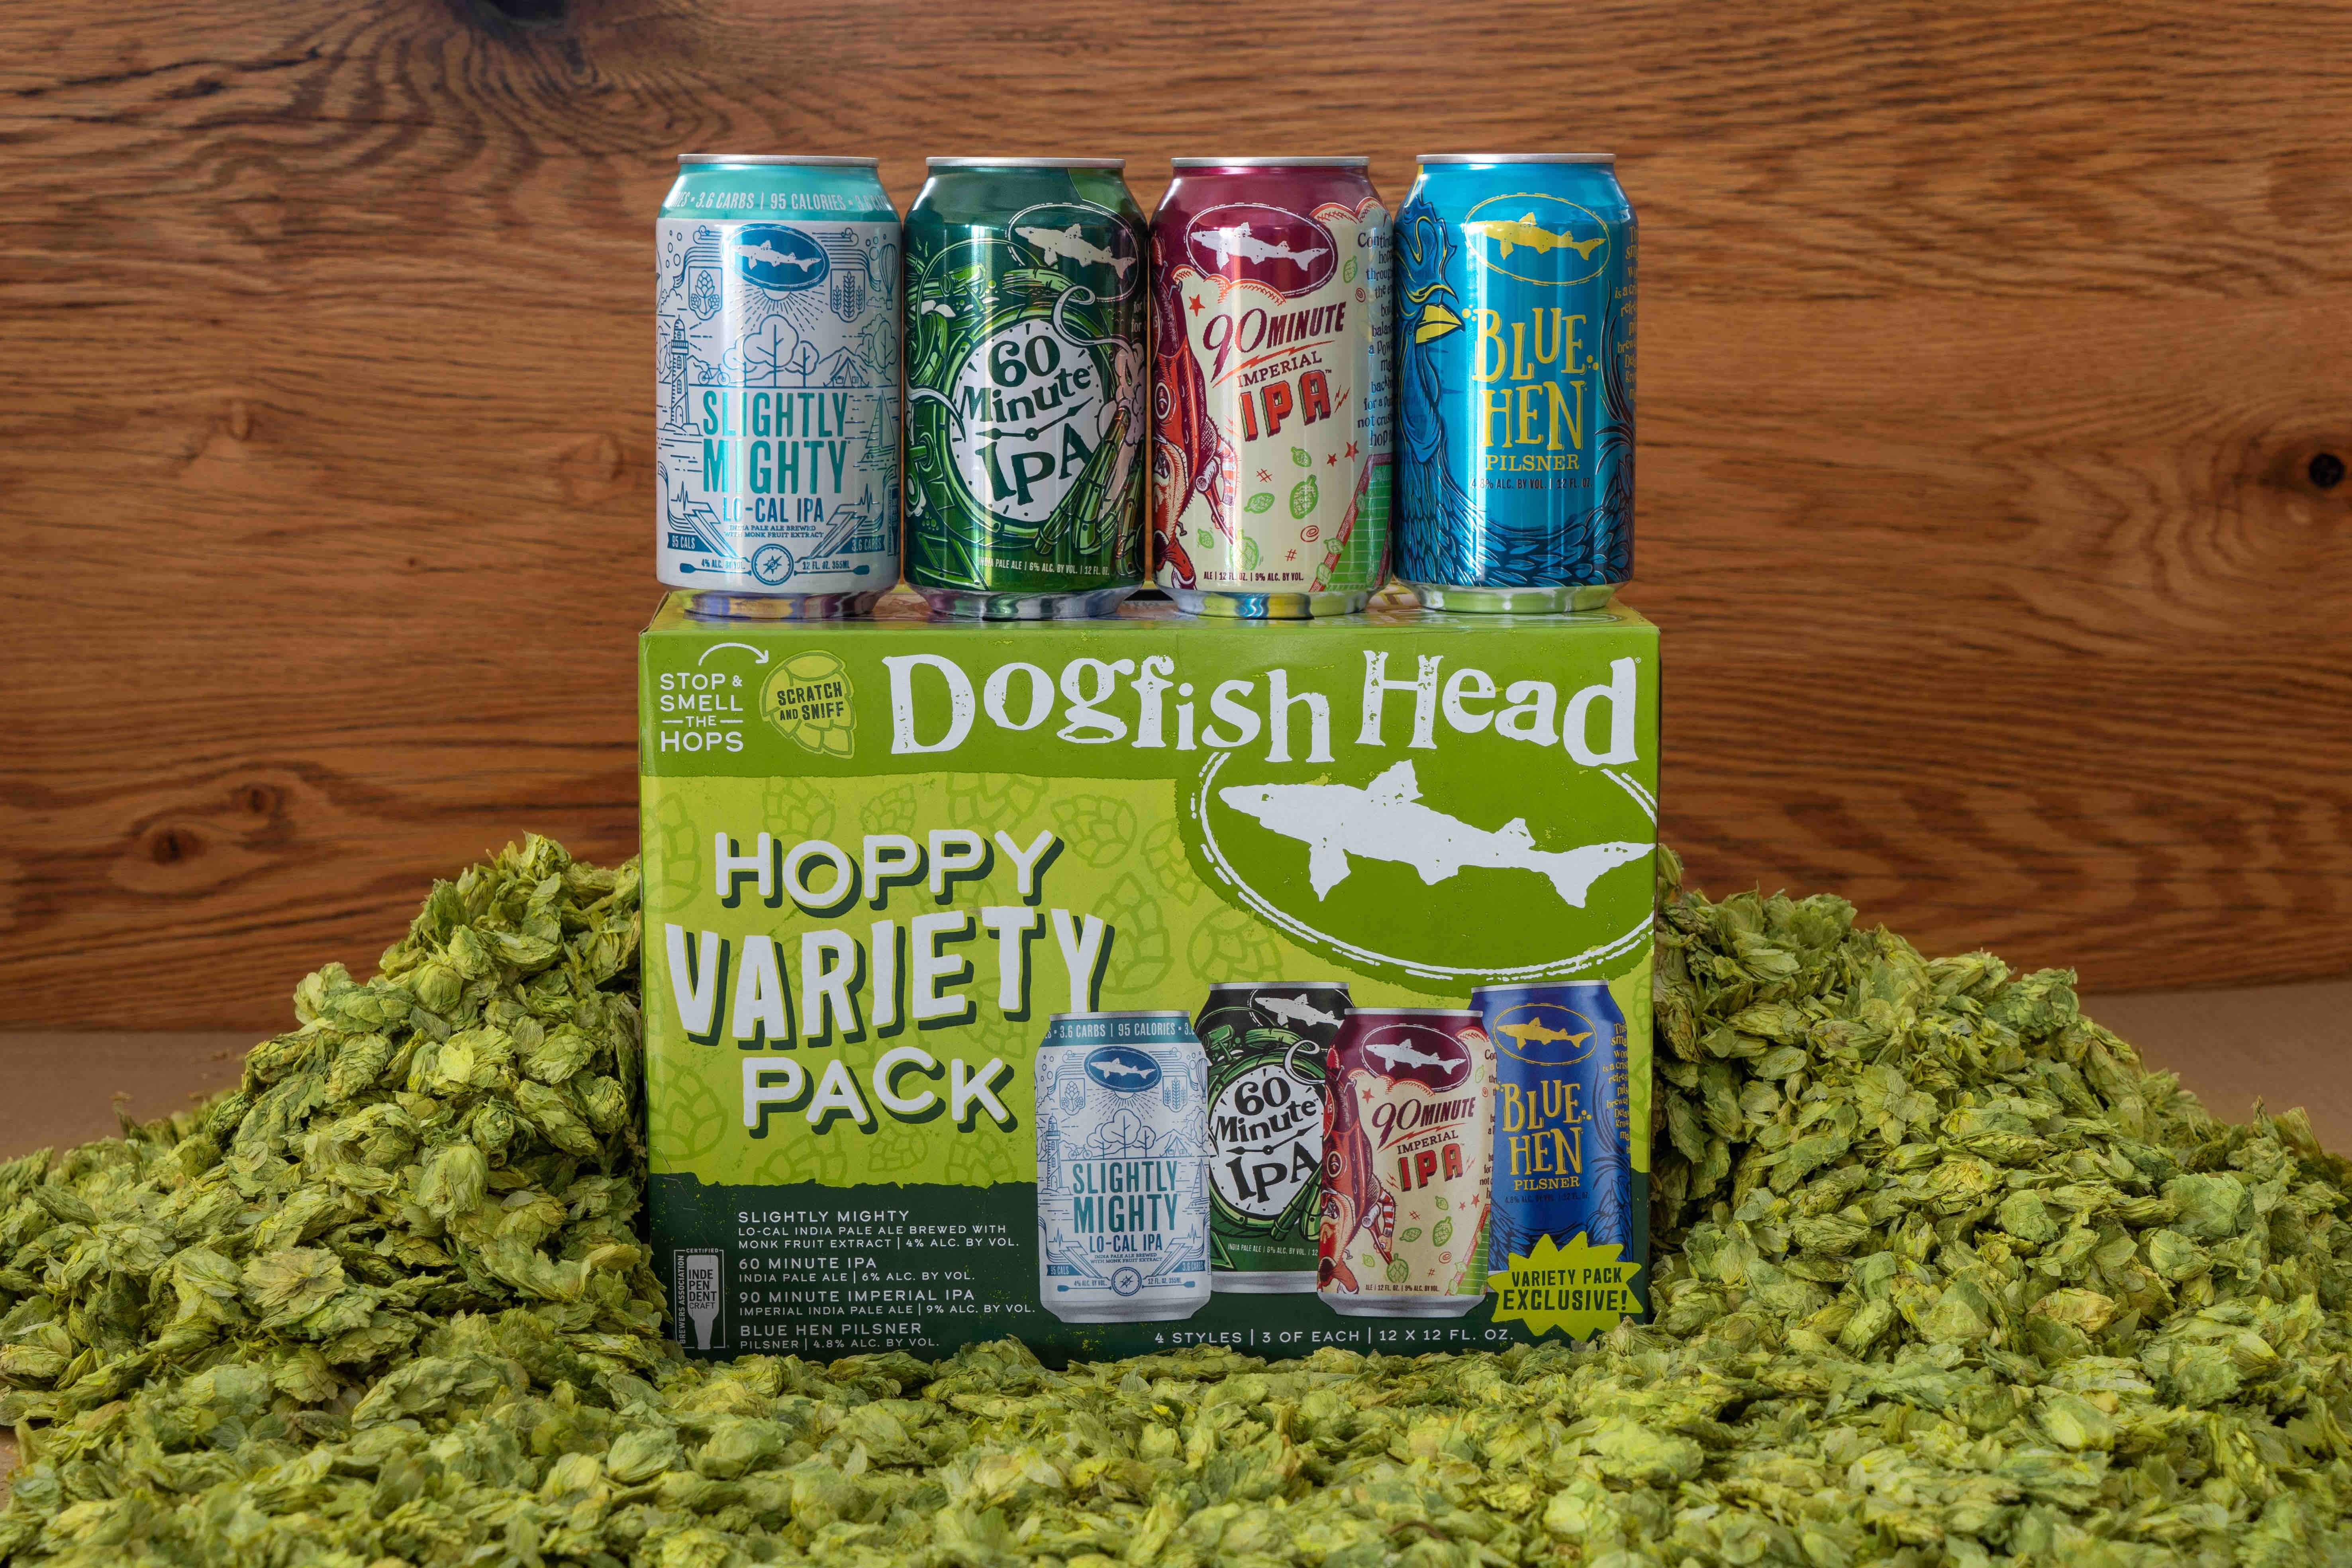 image of Dogfish Head Craft Brewery Hoppy Variety Pack courtesy of Dogfish Head Craft Brewery